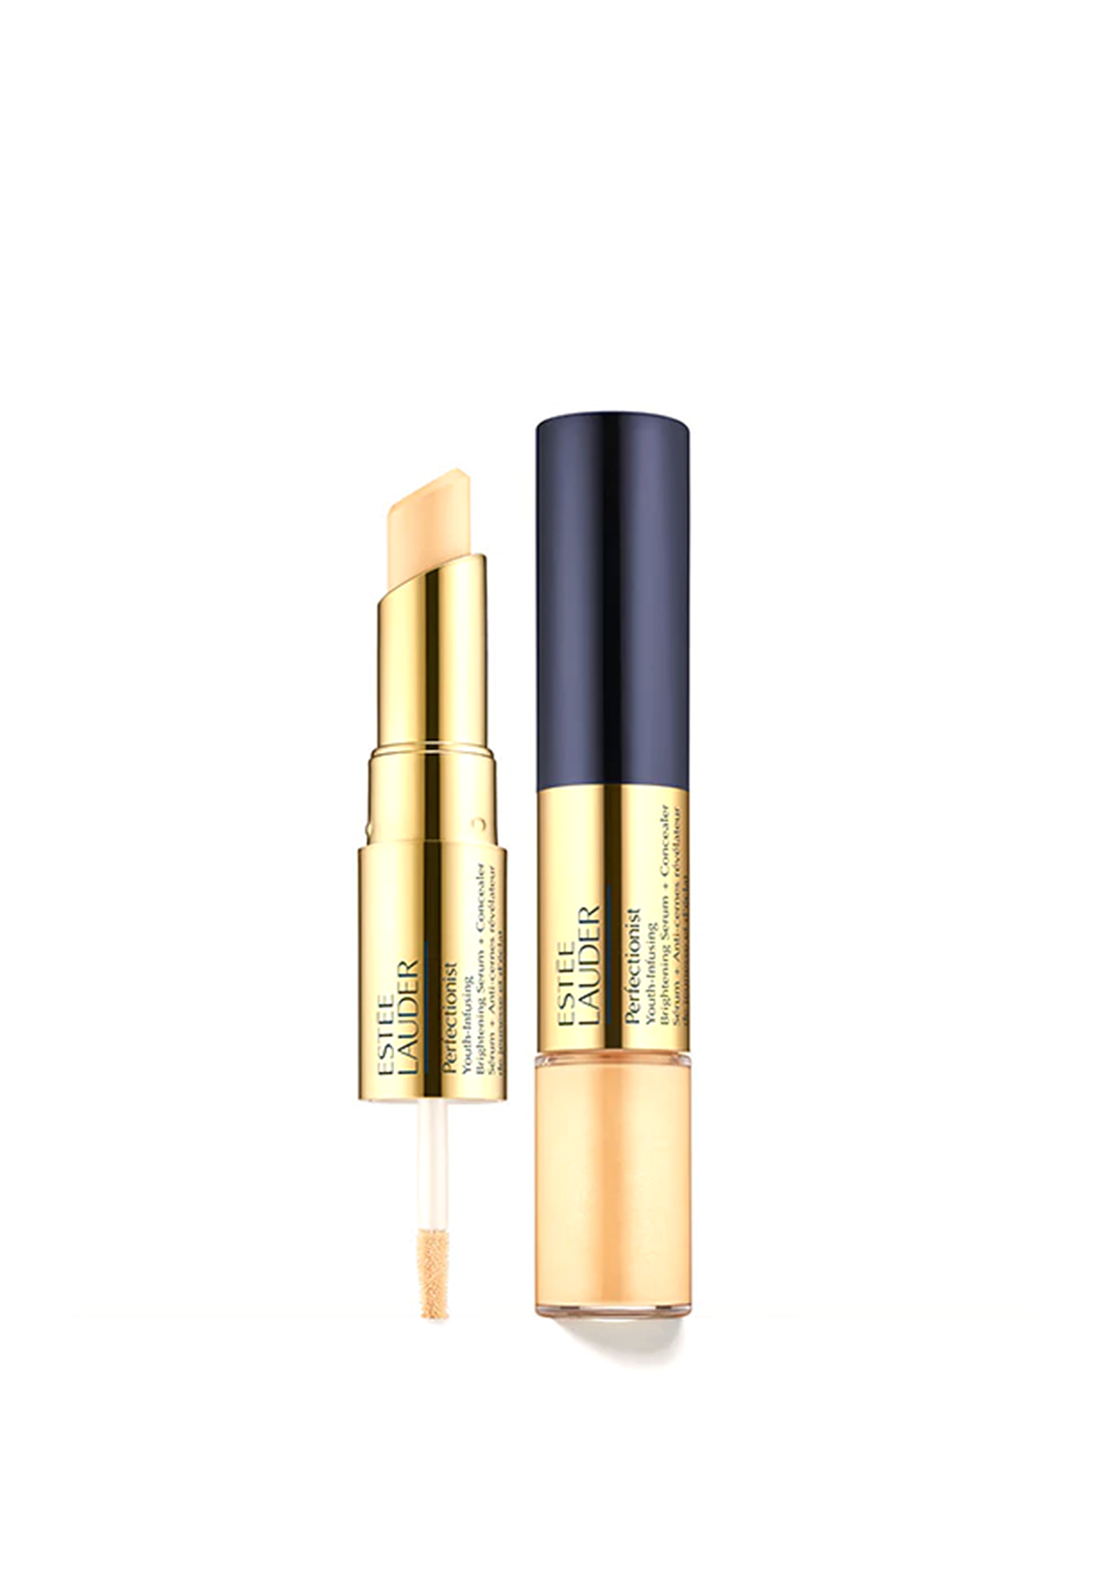 Estee Lauder Perfectionist Youth-Infusing Brightening Serum & Concealer, Extra Light Natural